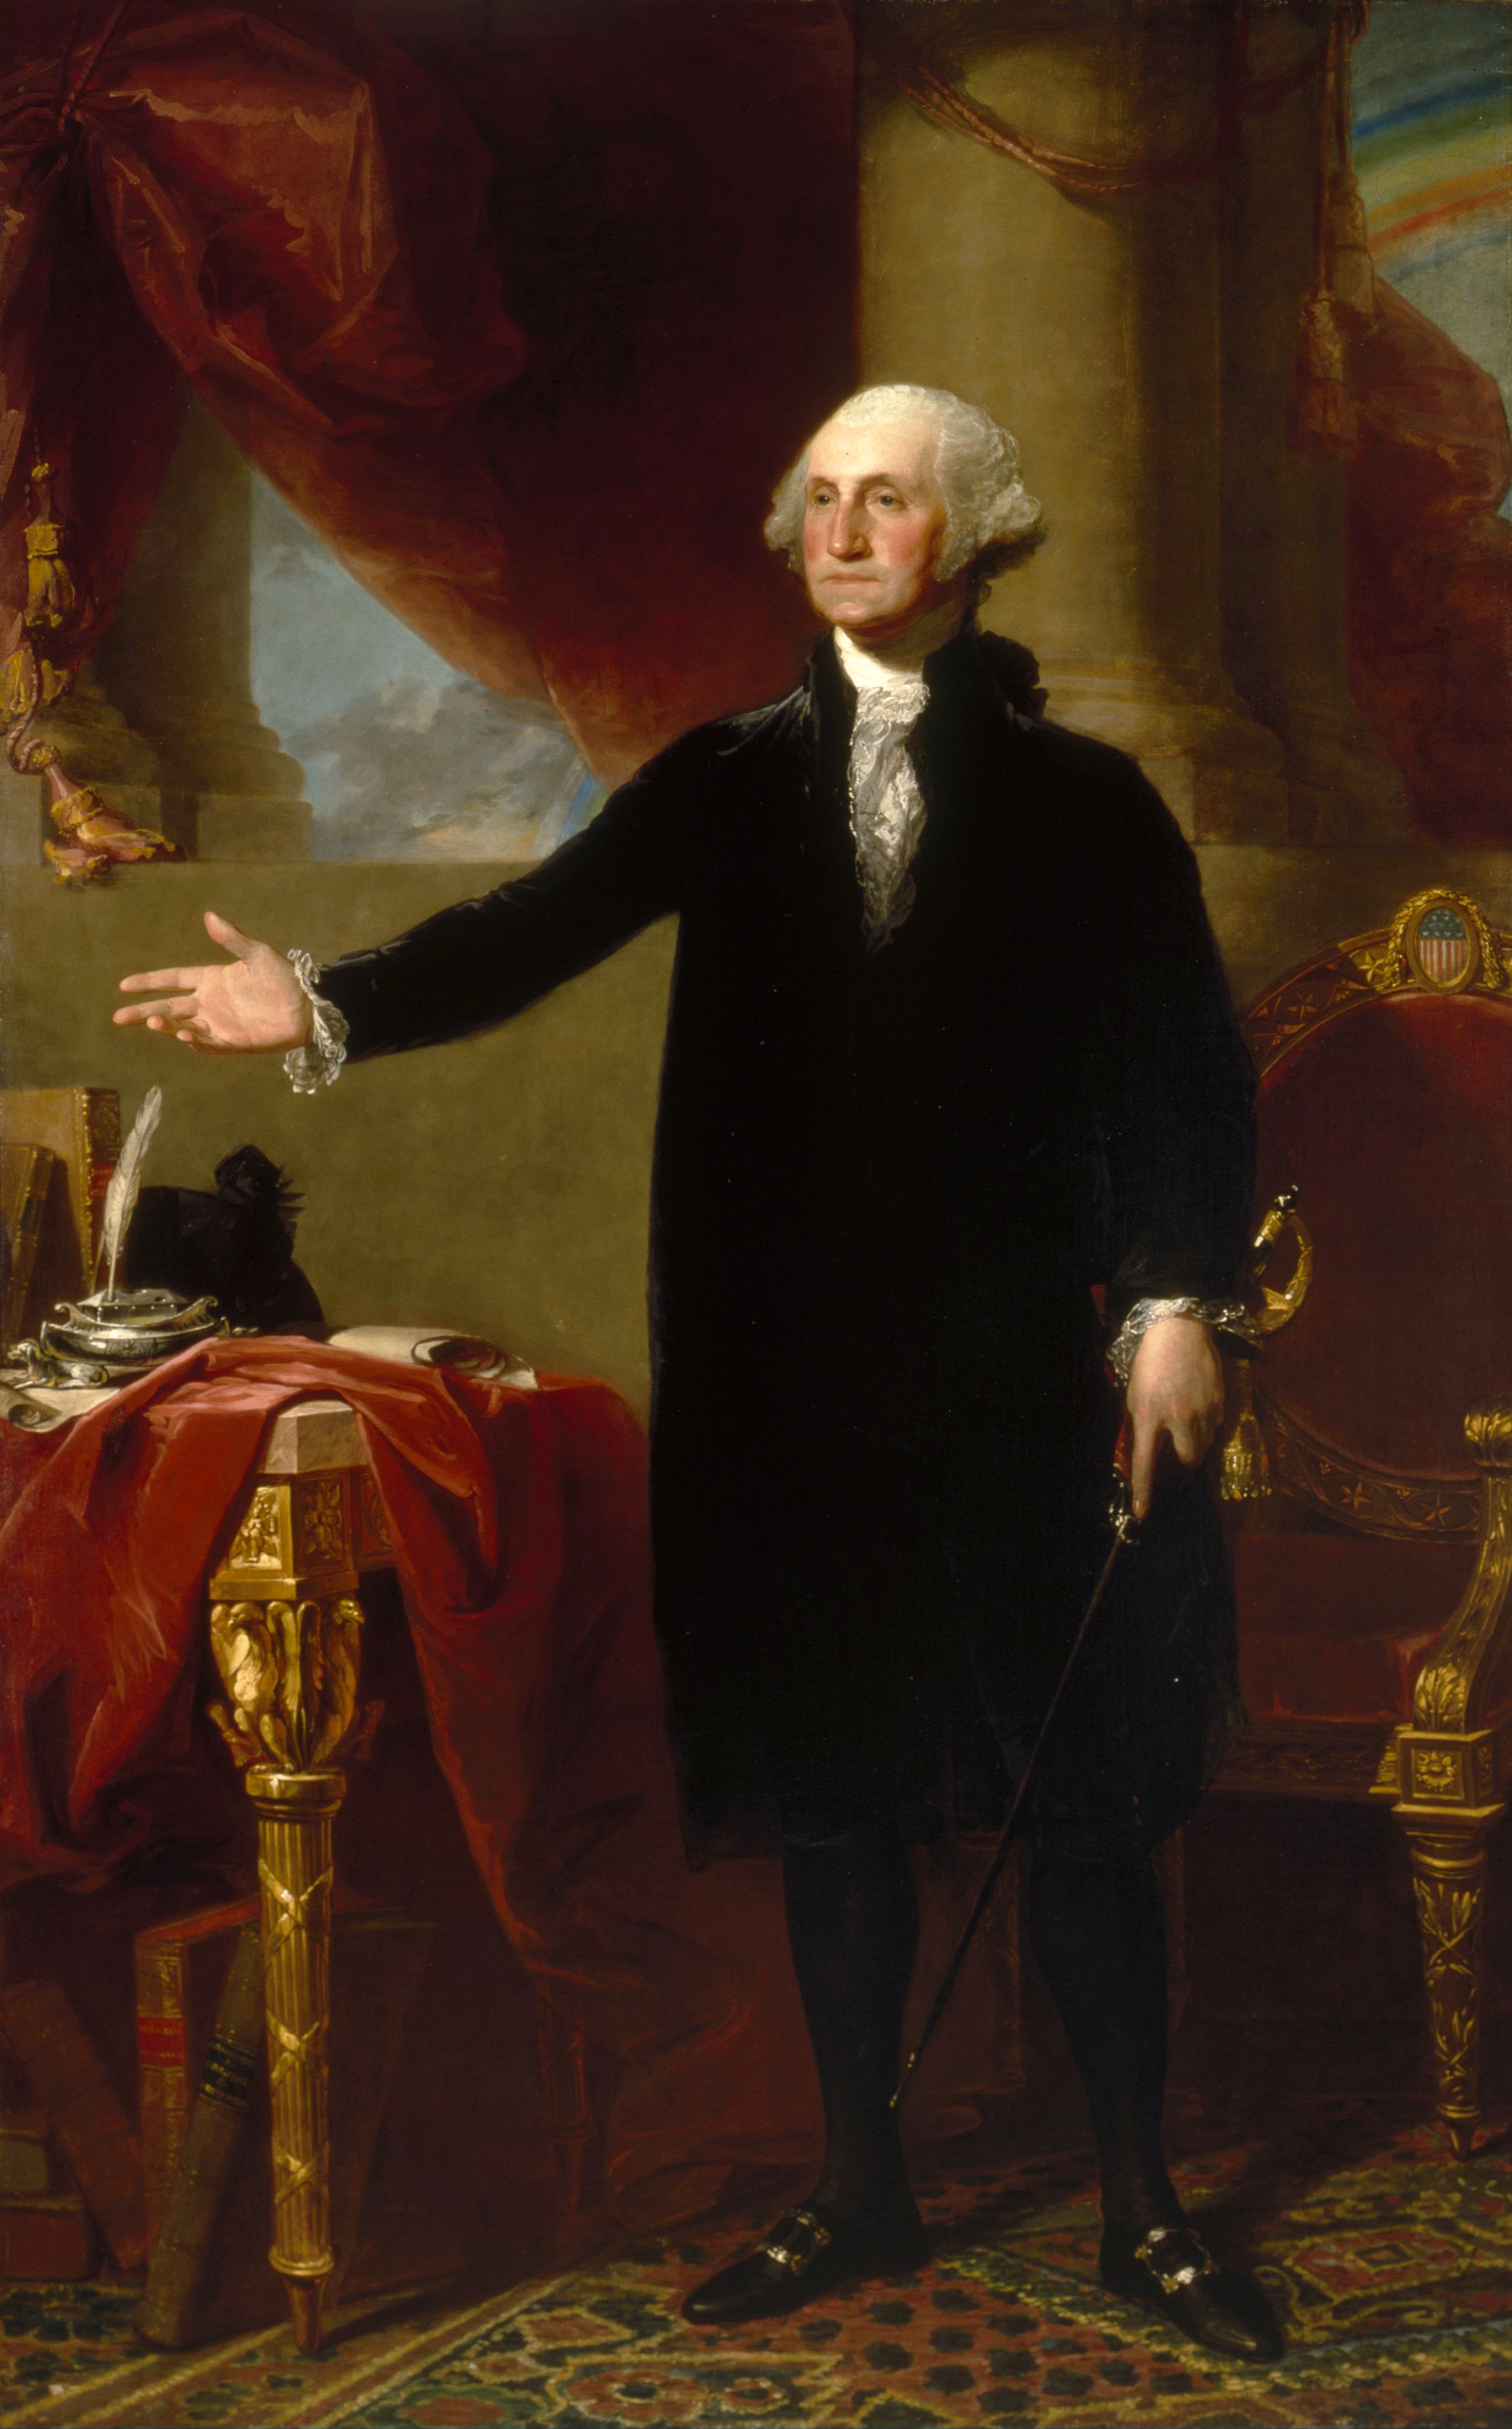 Gilbert_Stuart%2C_George_Washington_%28Lansdowne_portrait%2C_1796%29.jpg